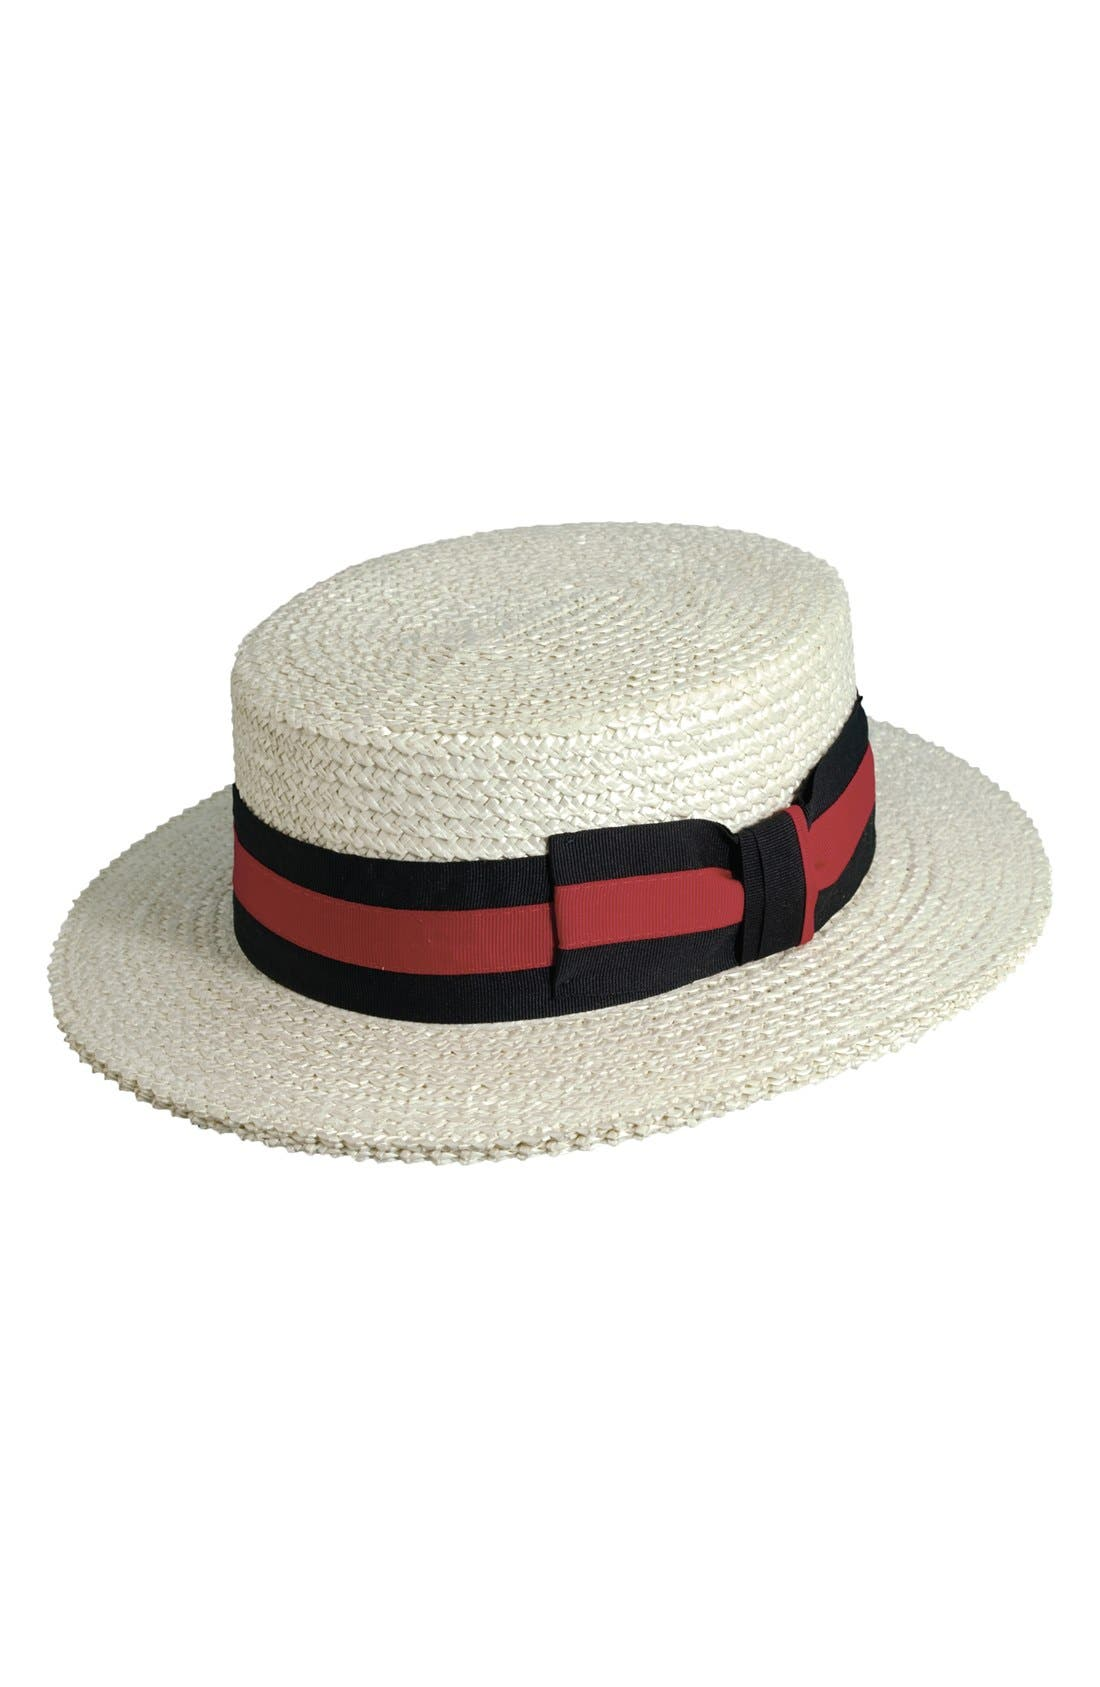 SCALA Straw Boater Hat, Main, color, BLEACH